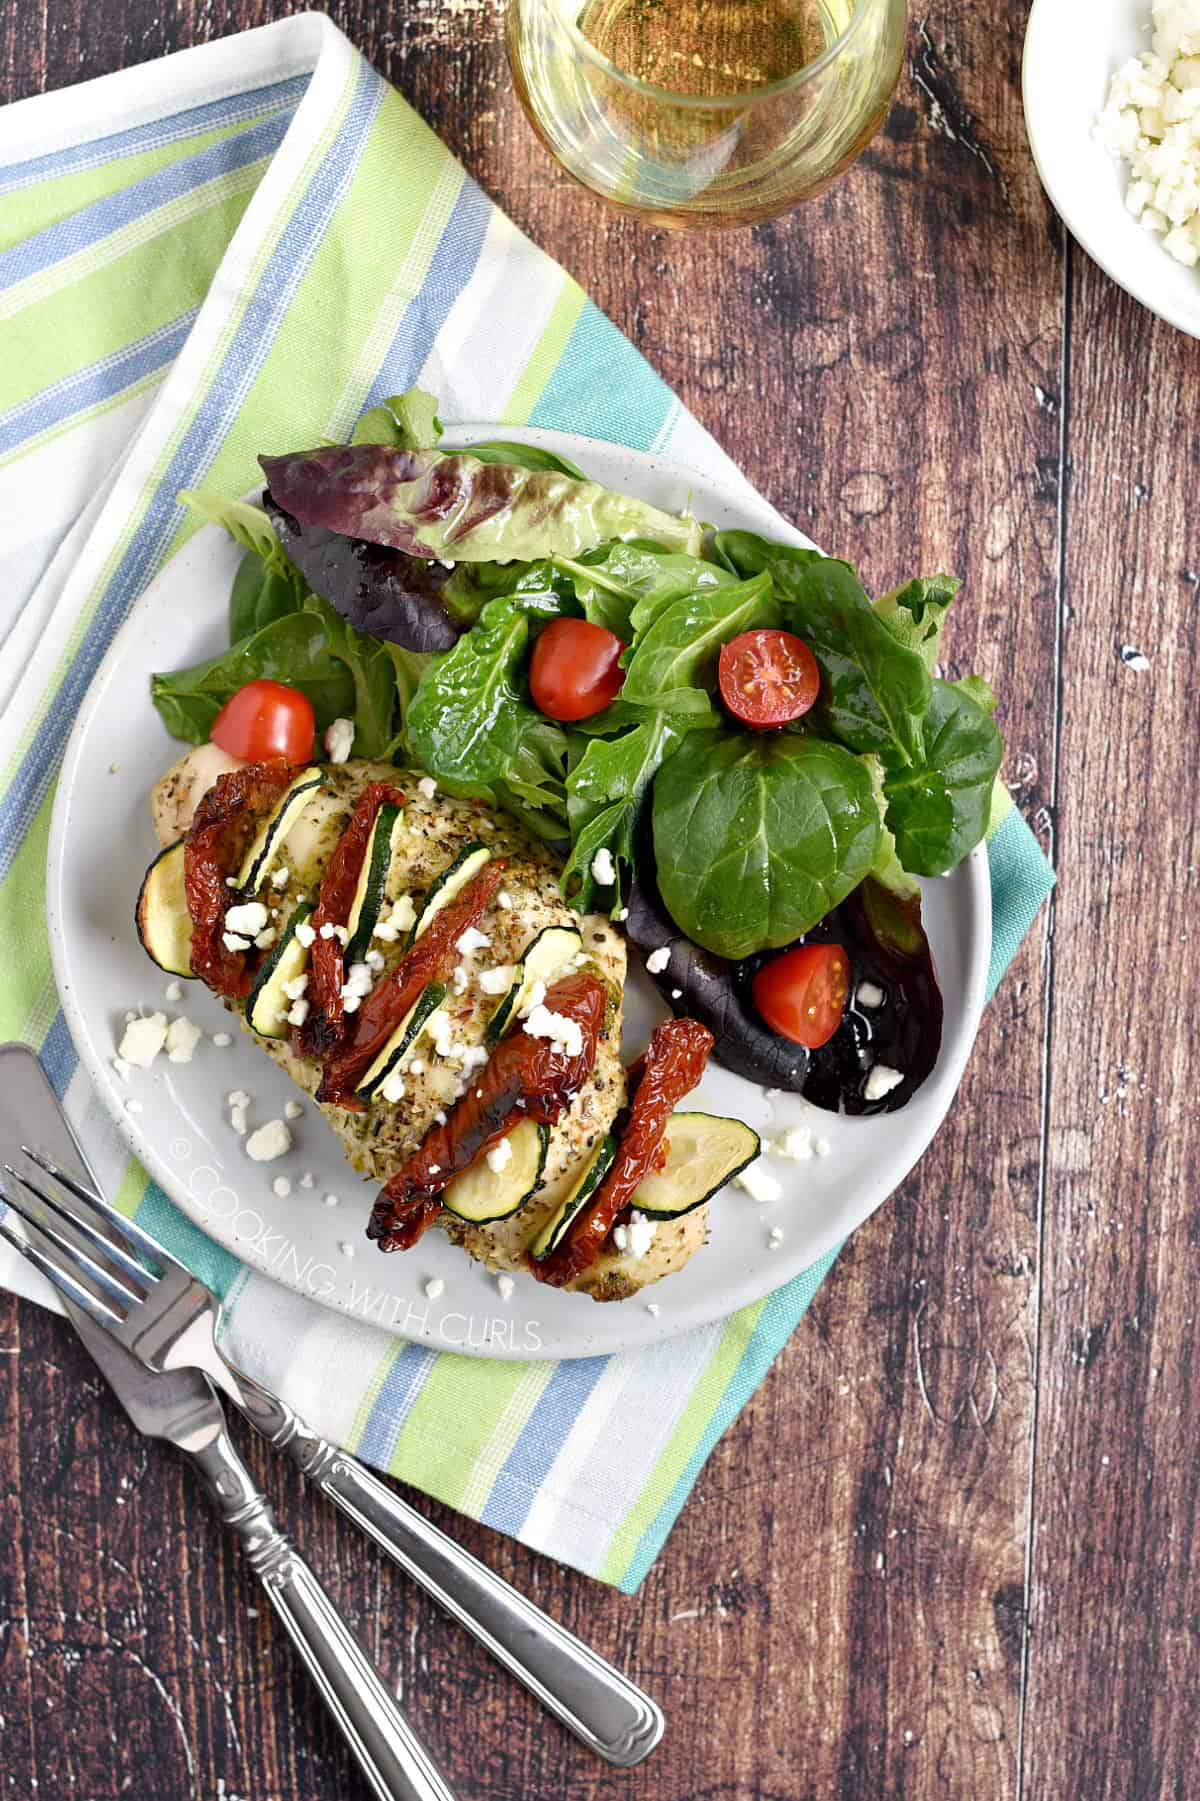 Mediterranean Hasselback Chicken Breast with sun-dried tomatoes, zucchini, pesto and feta cheese served on a plate with mixed greens and cherry tomatoes.